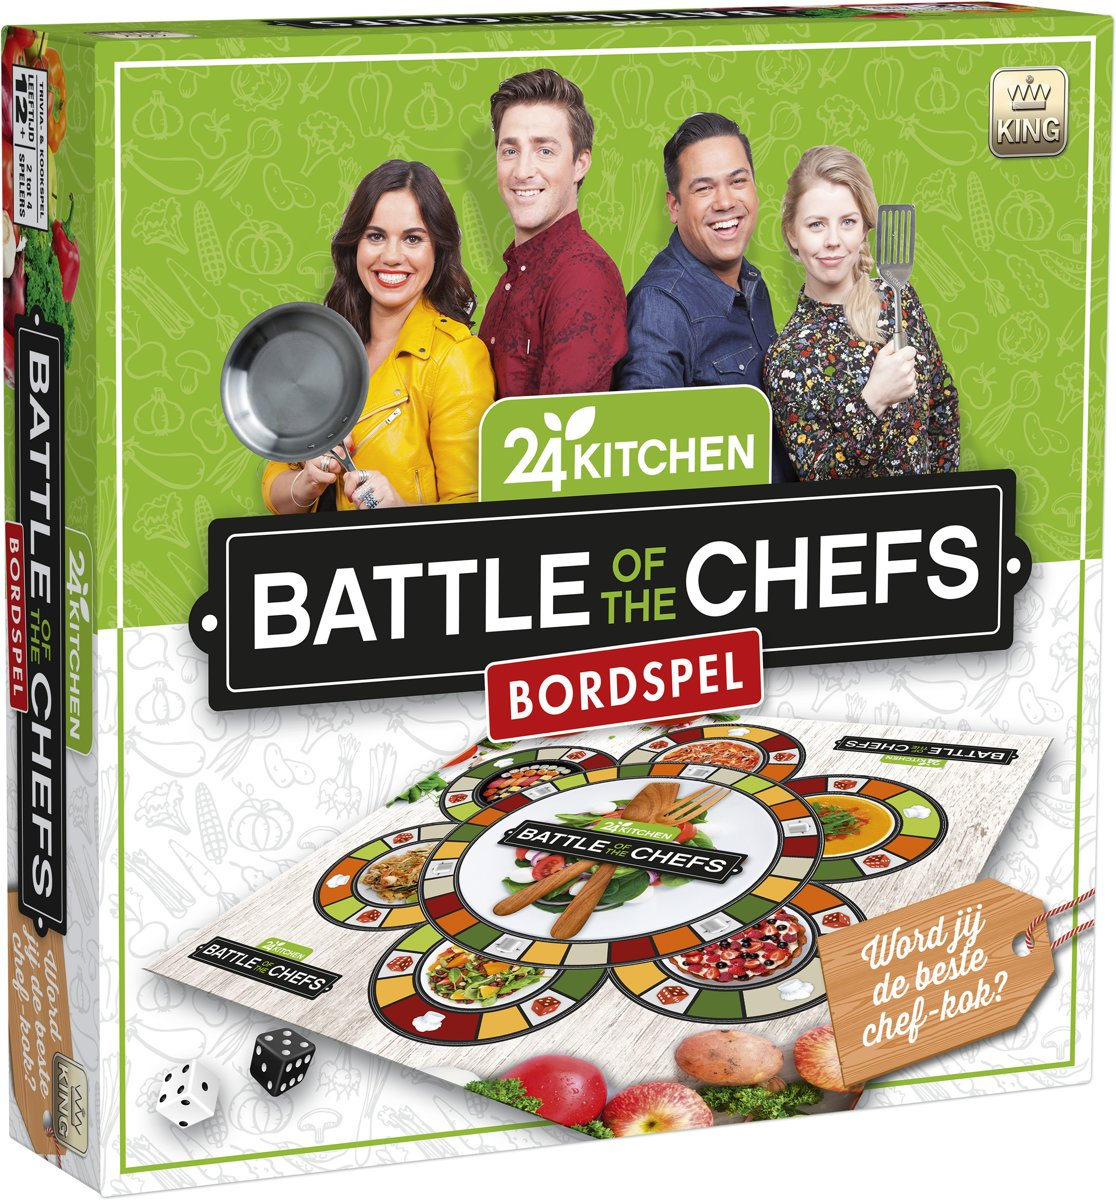 24Kitchen Battle of the Chefs gezelschapsspel